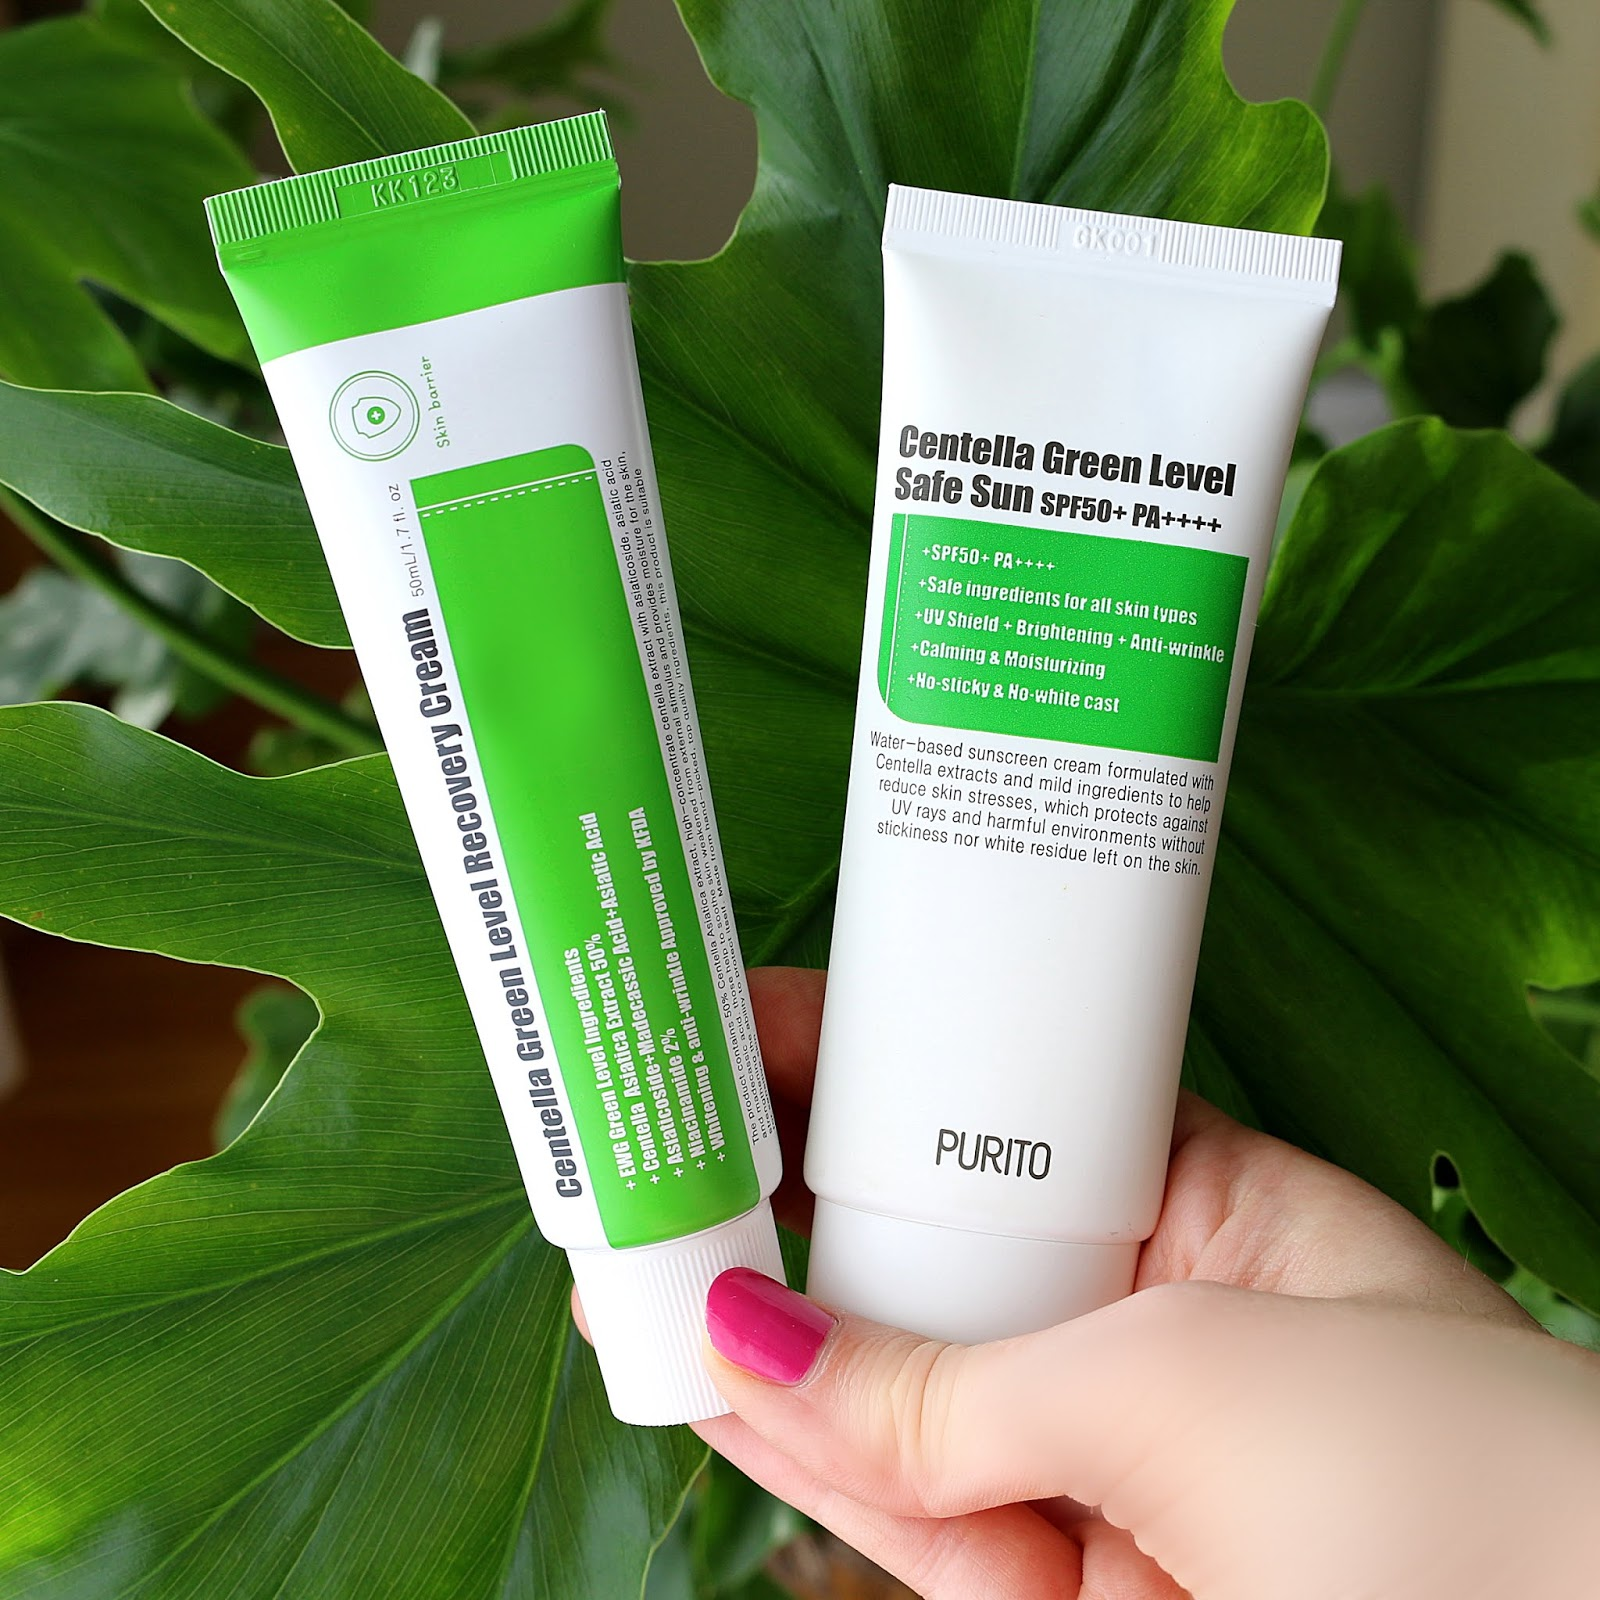 PURITO Centella Green Level Recovery Cream Safe Sun Korean Skincare Review